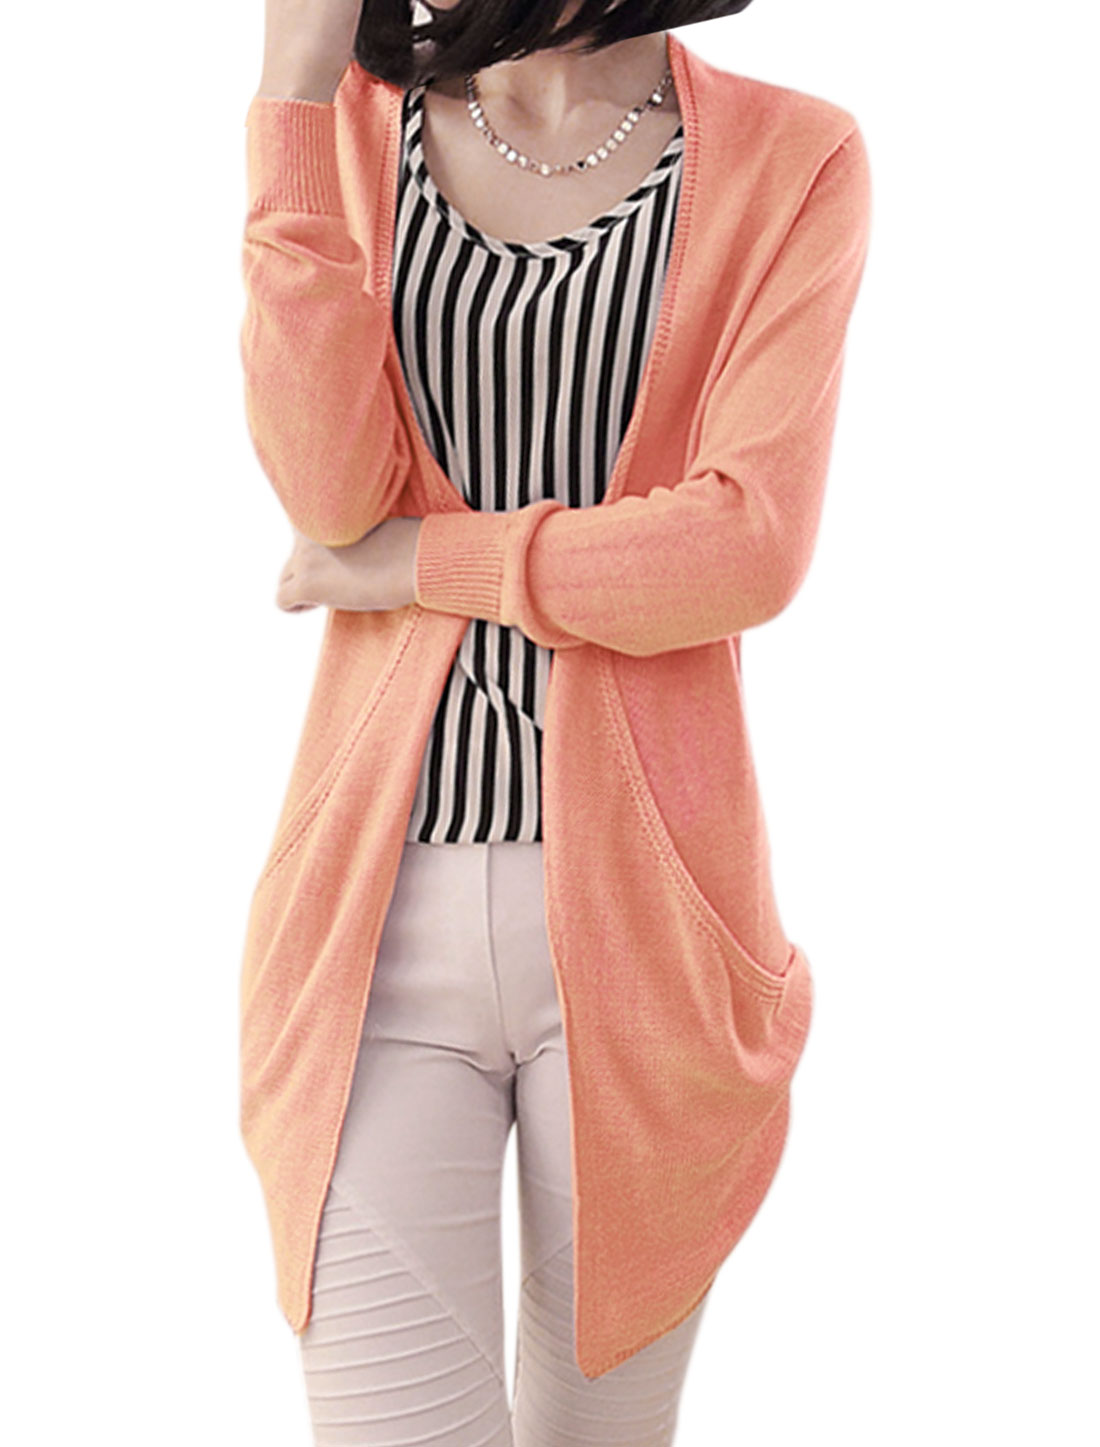 Women Open Front Hollow Out Back Low-High Hem Leisure Cardigan Pale Pink S